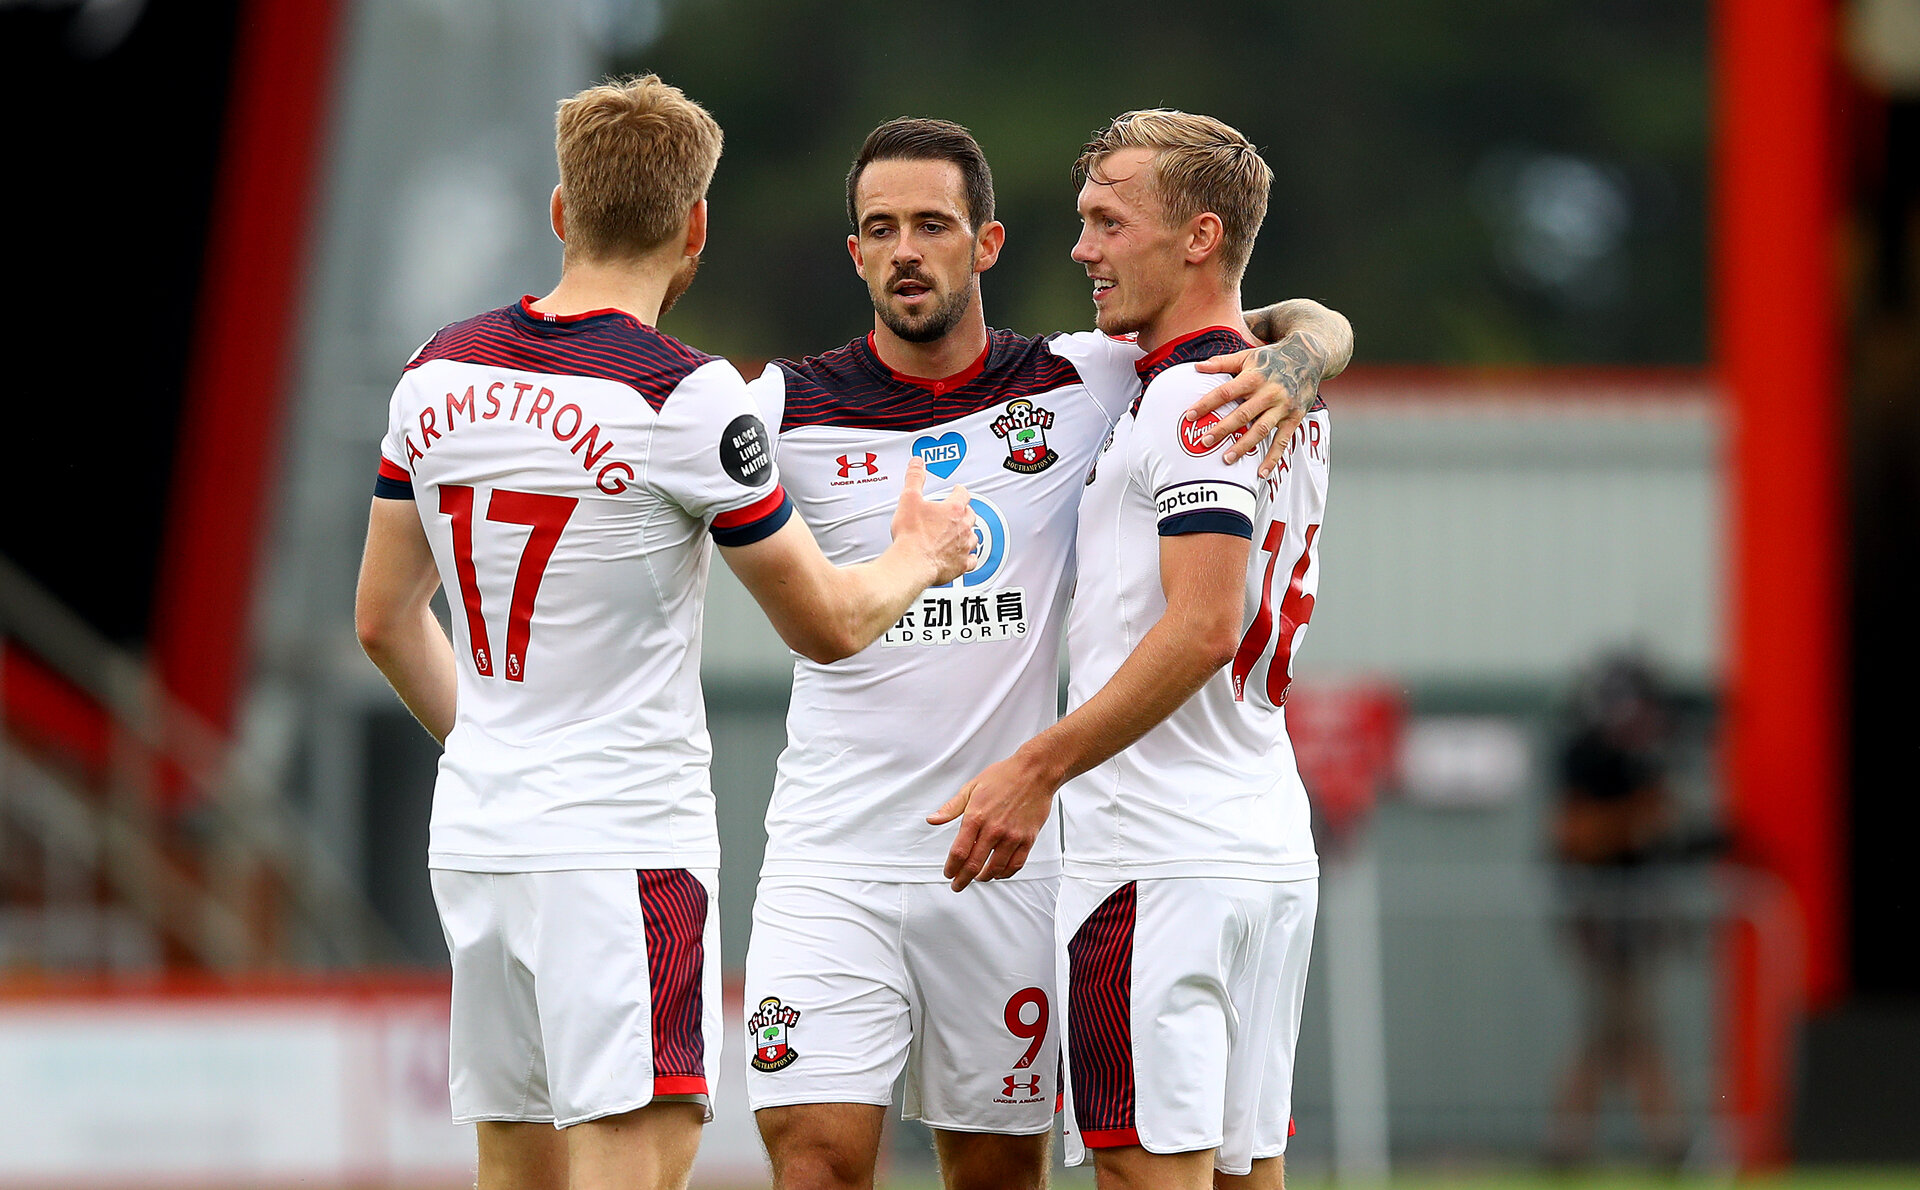 BOURNEMOUTH, ENGLAND - JULY 19: Danny Ings(centre) of Southampton celebrates his goal with Stuart Armstrong(L) and James Ward-Prowse(R) during the Premier League match between AFC Bournemouth and Southampton FC at Vitality Stadium on July 19, 2020 in Bournemouth, United Kingdom. Football Stadiums around Europe remain empty due to the Coronavirus Pandemic as Government social distancing laws prohibit fans inside venues resulting in all fixtures being played behind closed doors. (Photo by Matt Watson/Southampton FC via Getty Images)